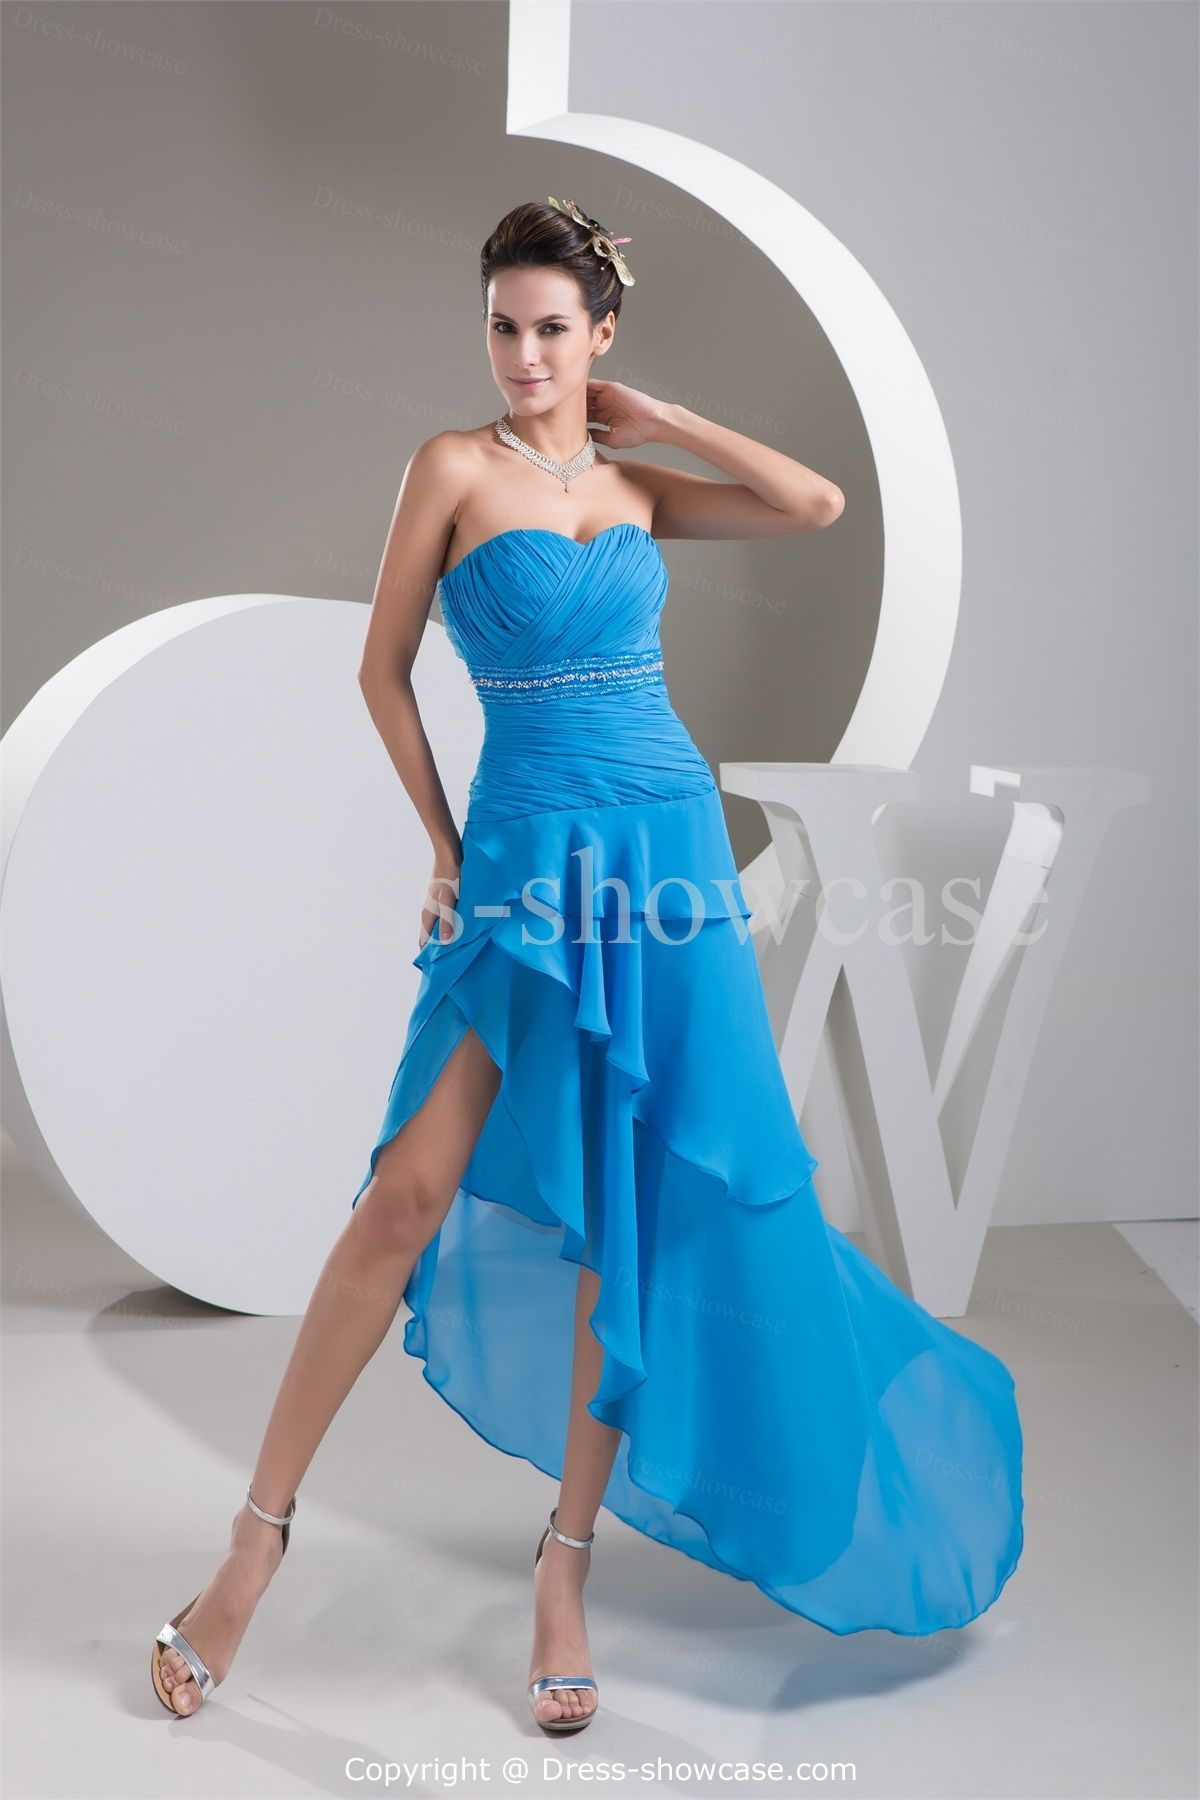 Special occasion dresses cheap uk clothing